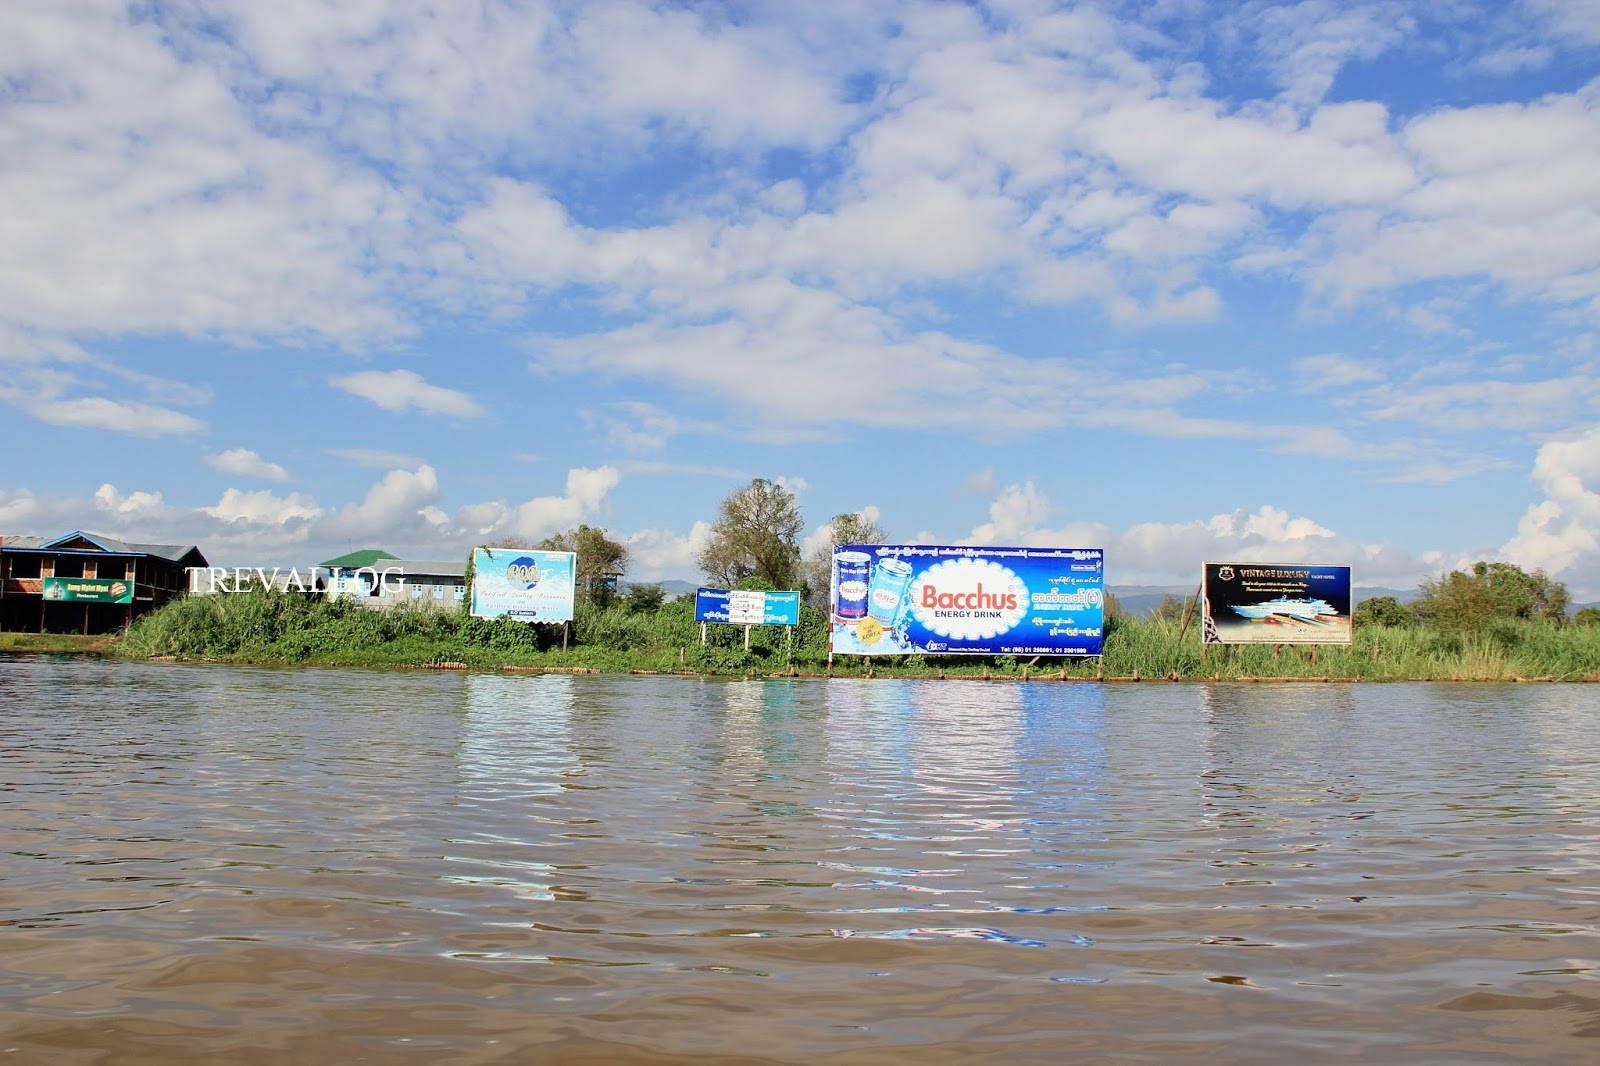 Advertisement spot in Inle lake, Myanmar